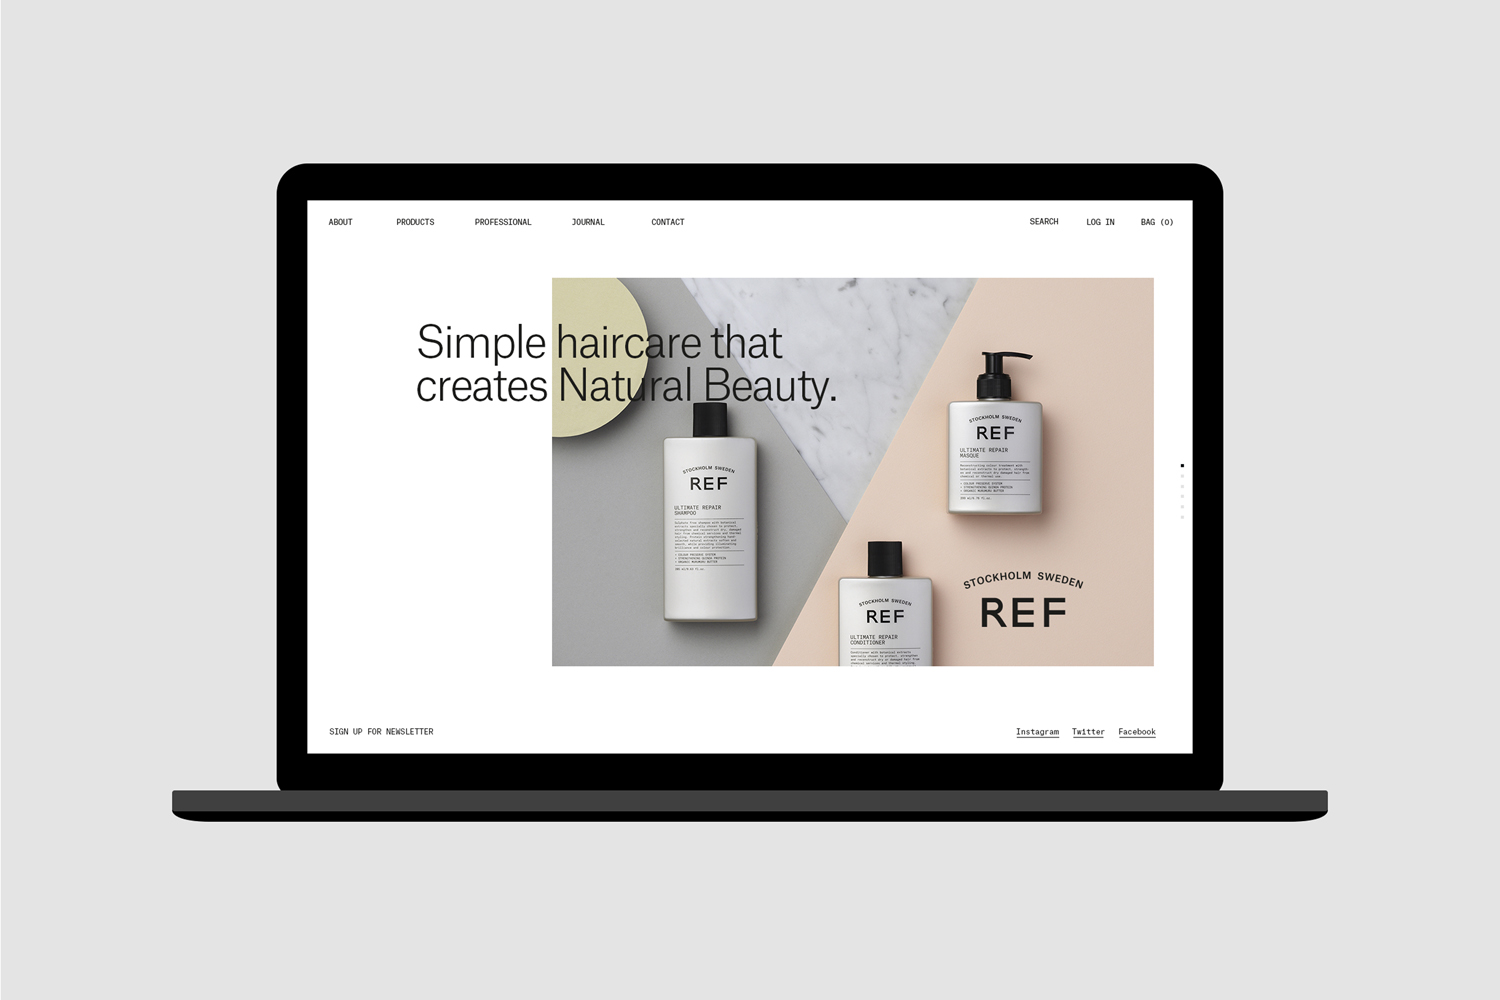 Visual identity and website by Scandinavian studio Kurppa Hosk for Swedish hair care brand REF